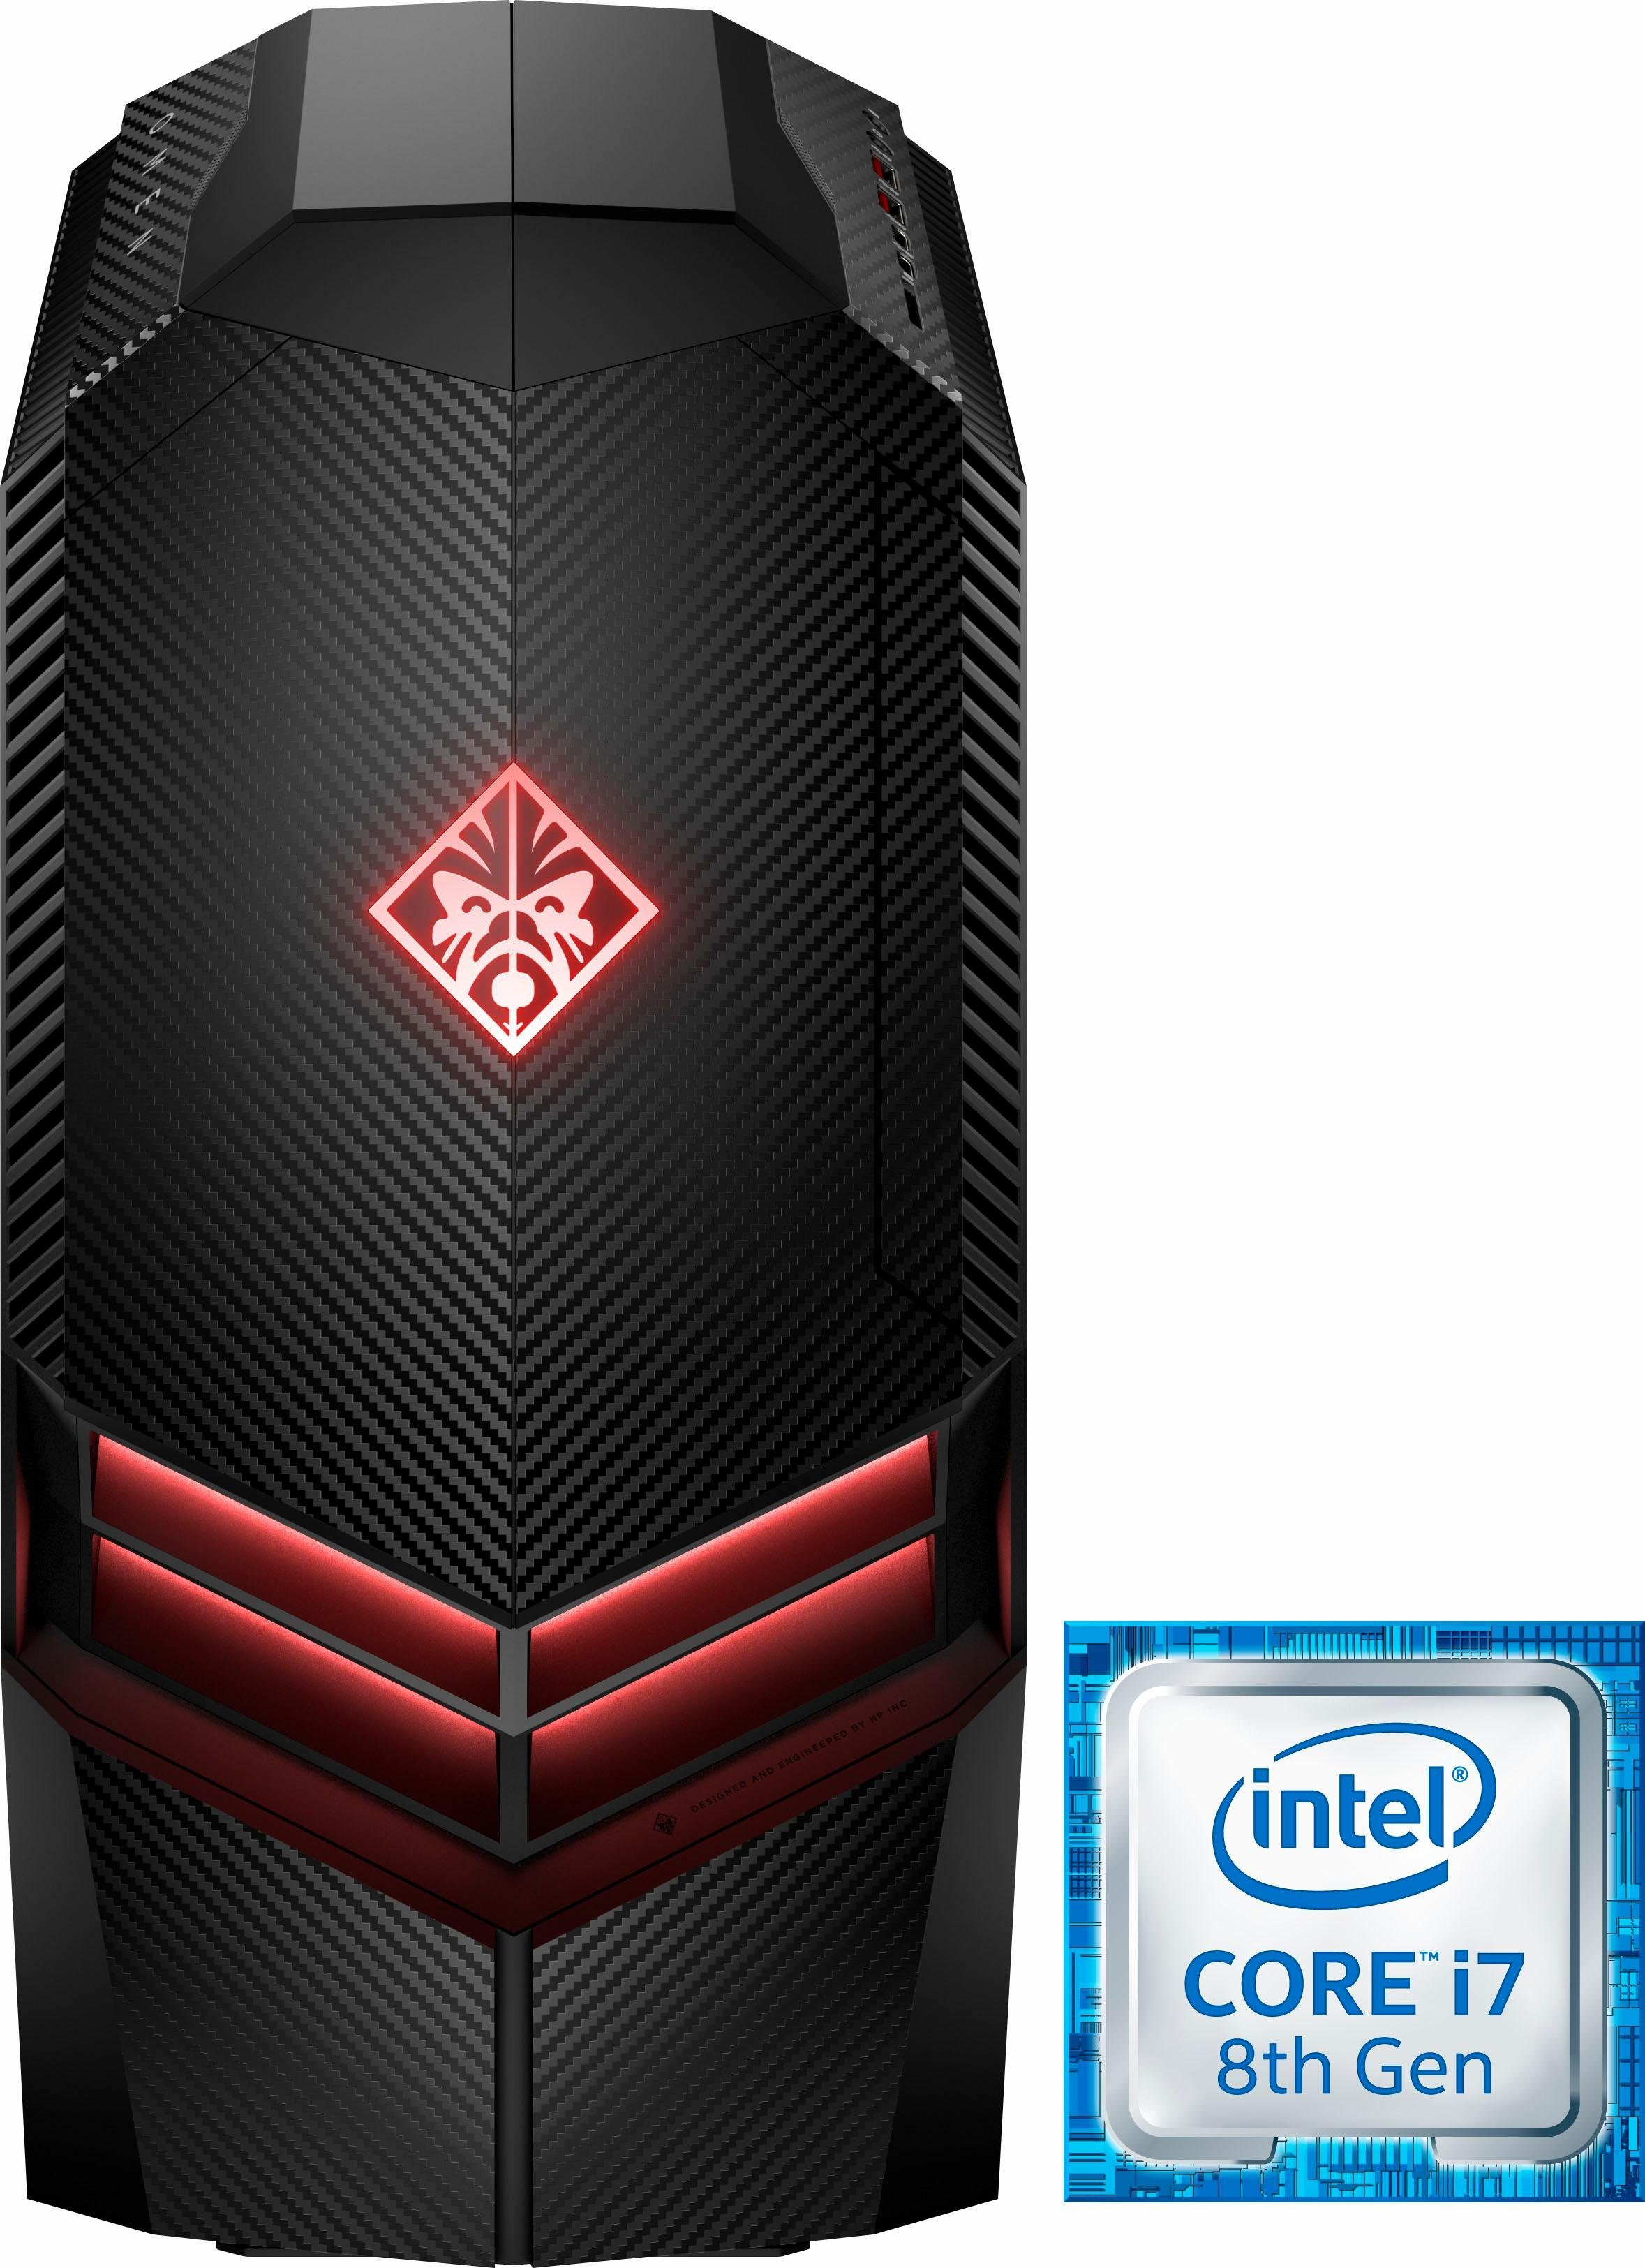 OMEN by HP 880-158ng Gaming-PC (Intel® Core i7, GeForce®, 16 GB RAM, 1000 GB HDD, 256 GB SSD, Luftkühlung)